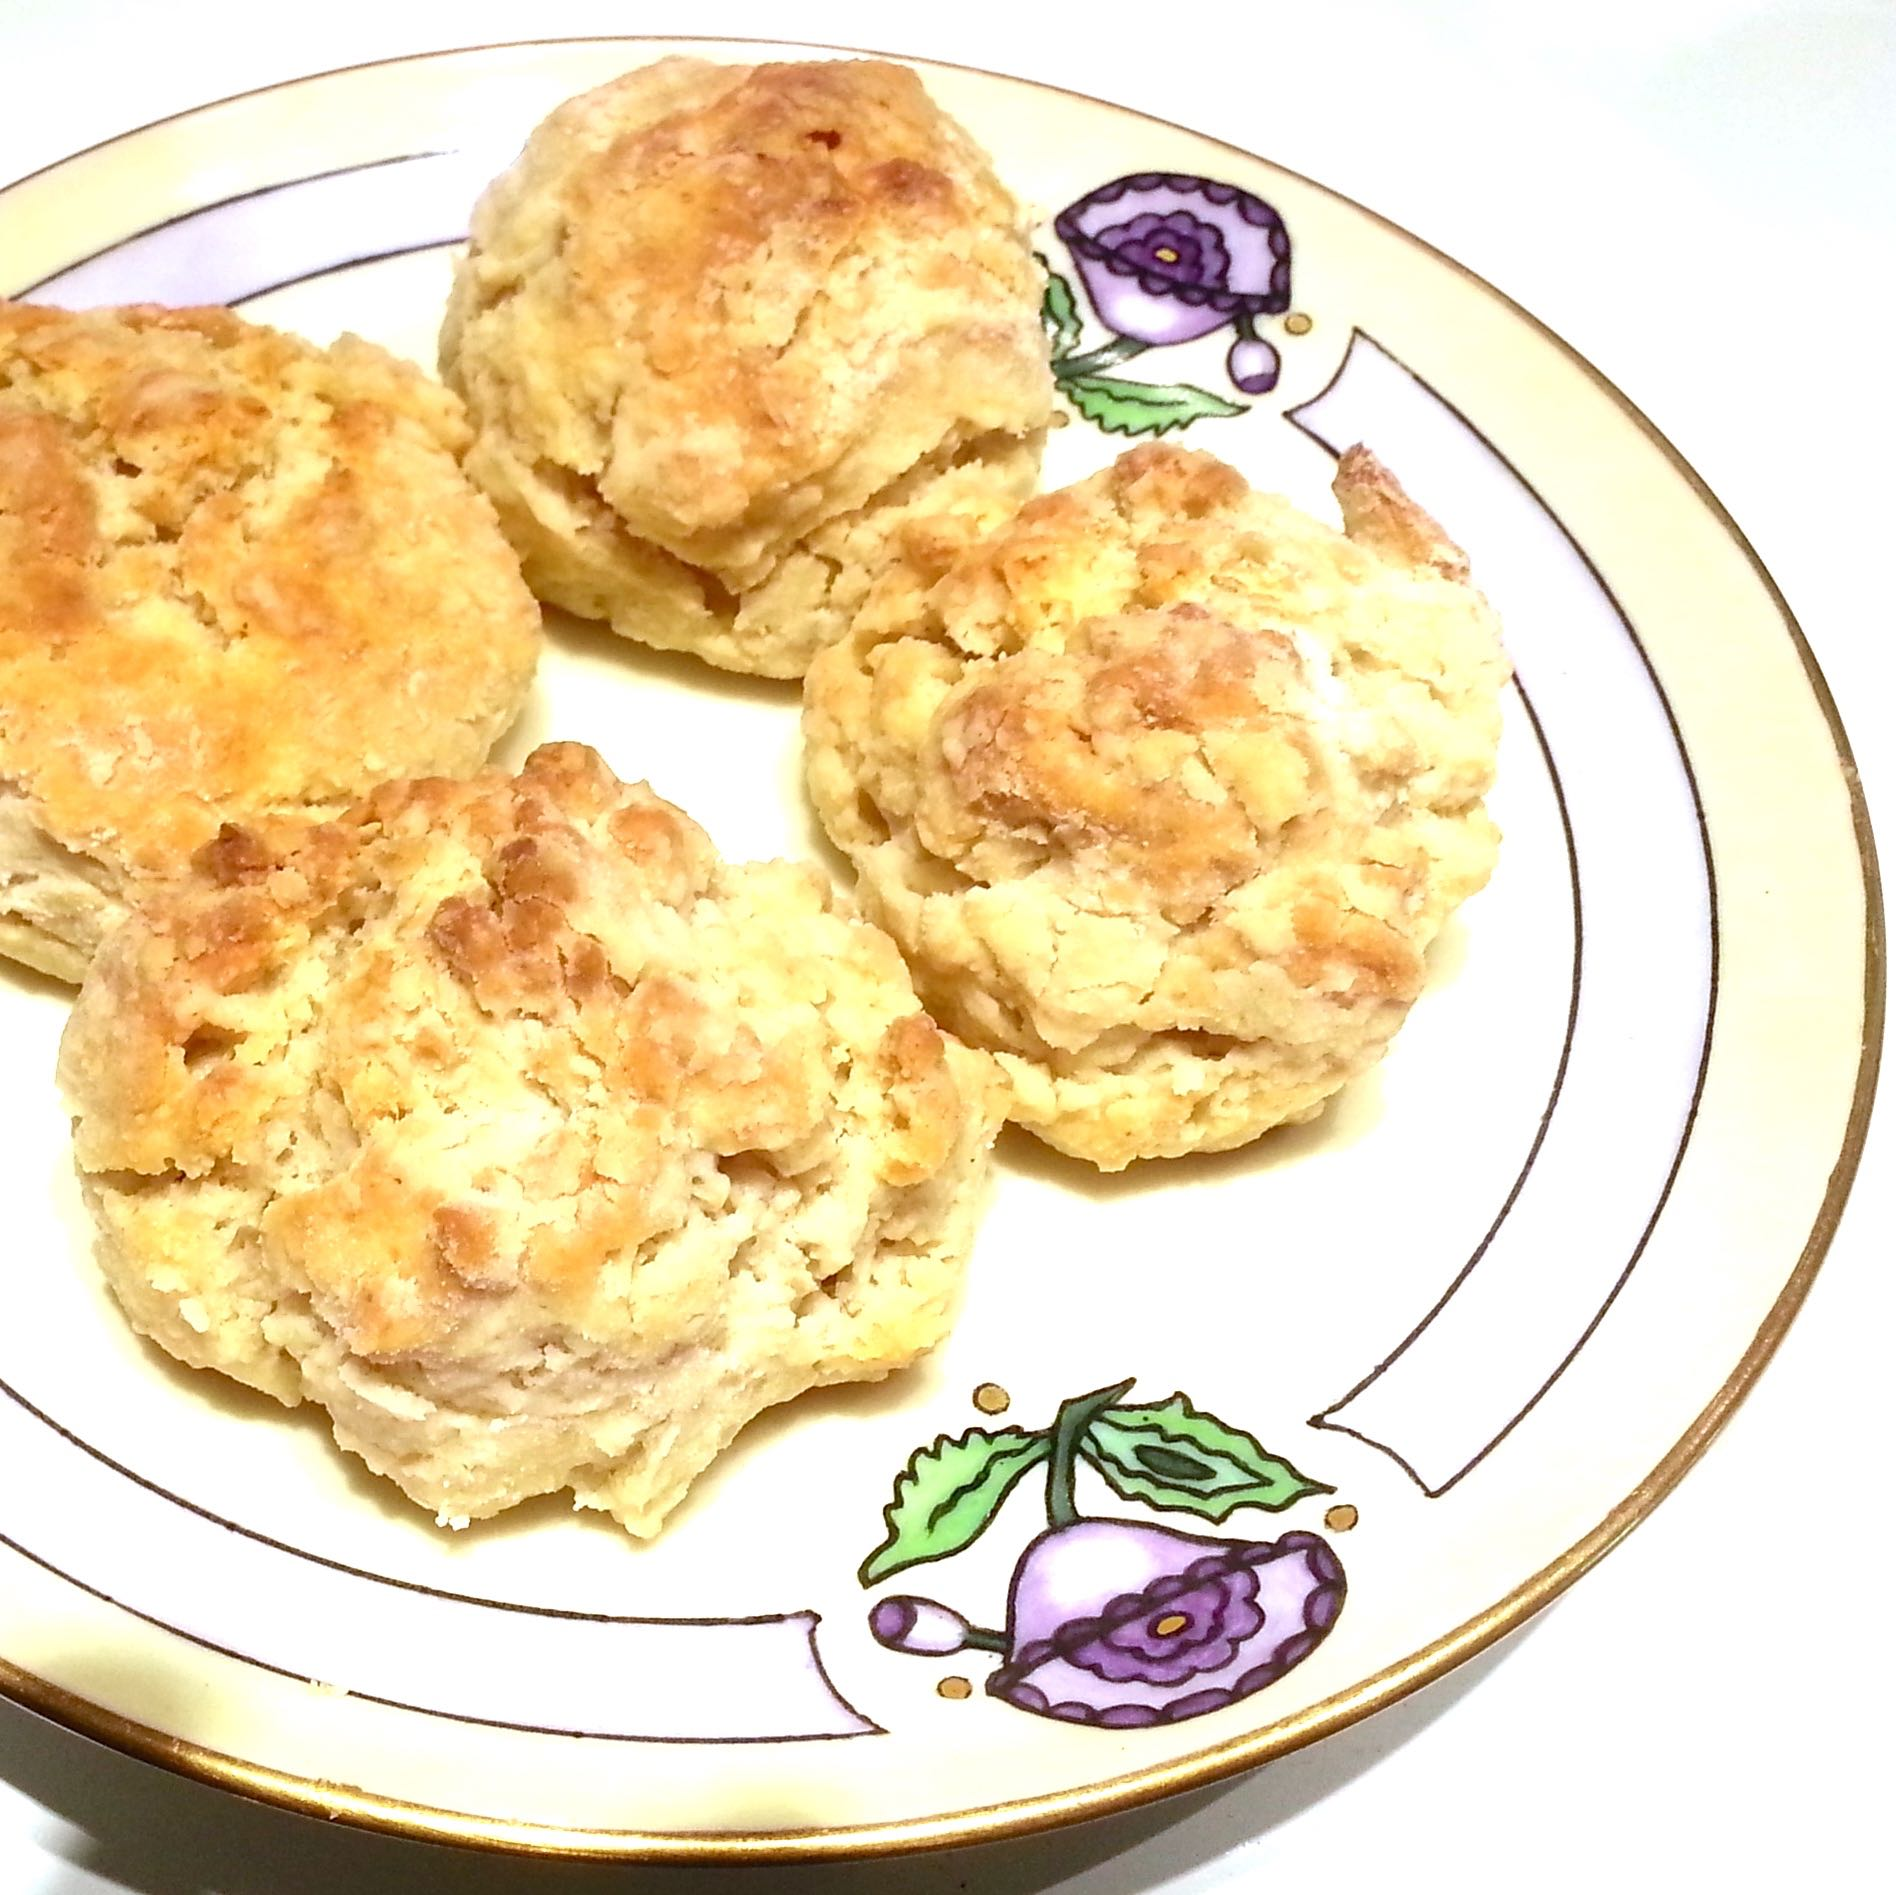 Oat Bran Biscuits